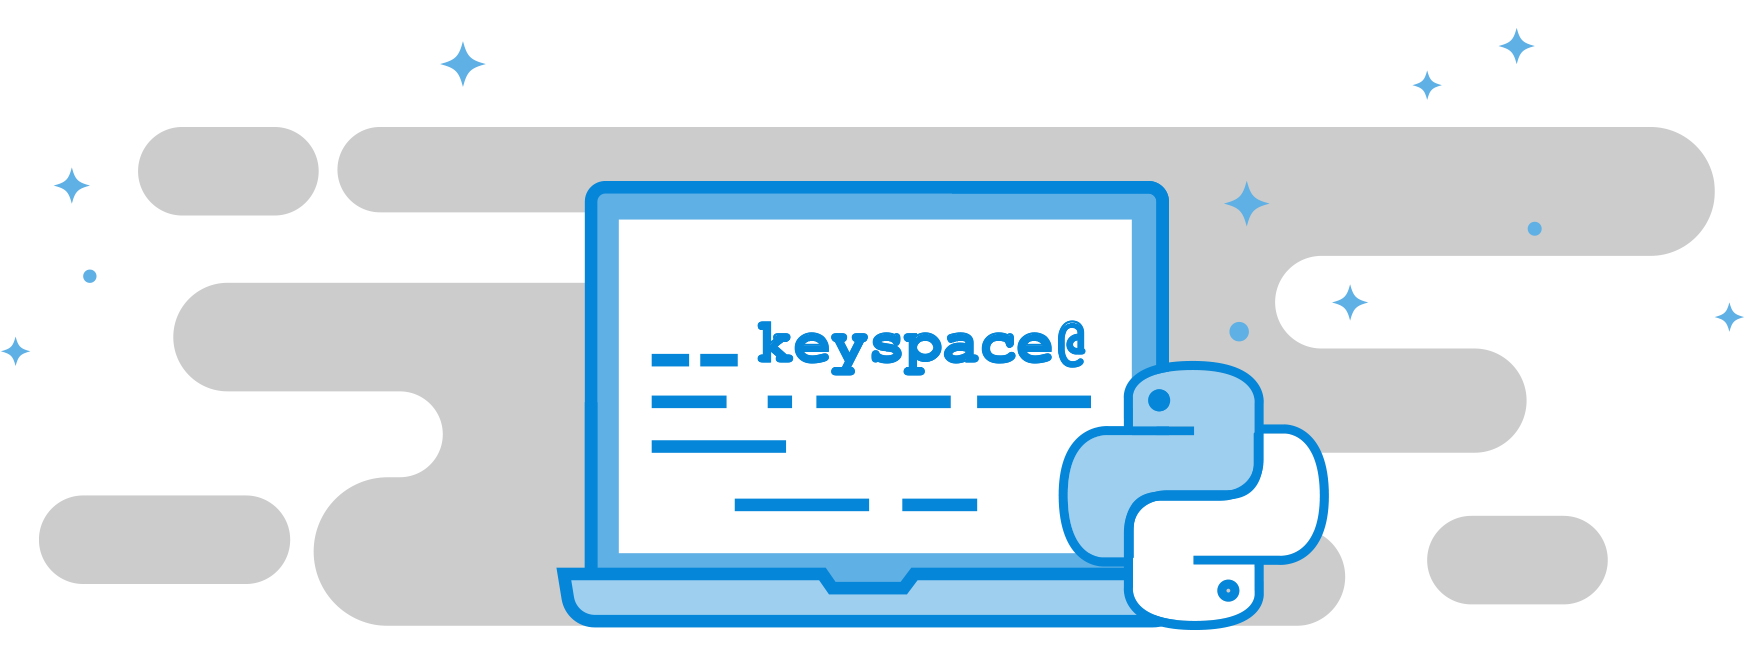 Redis keyspace notifications in python